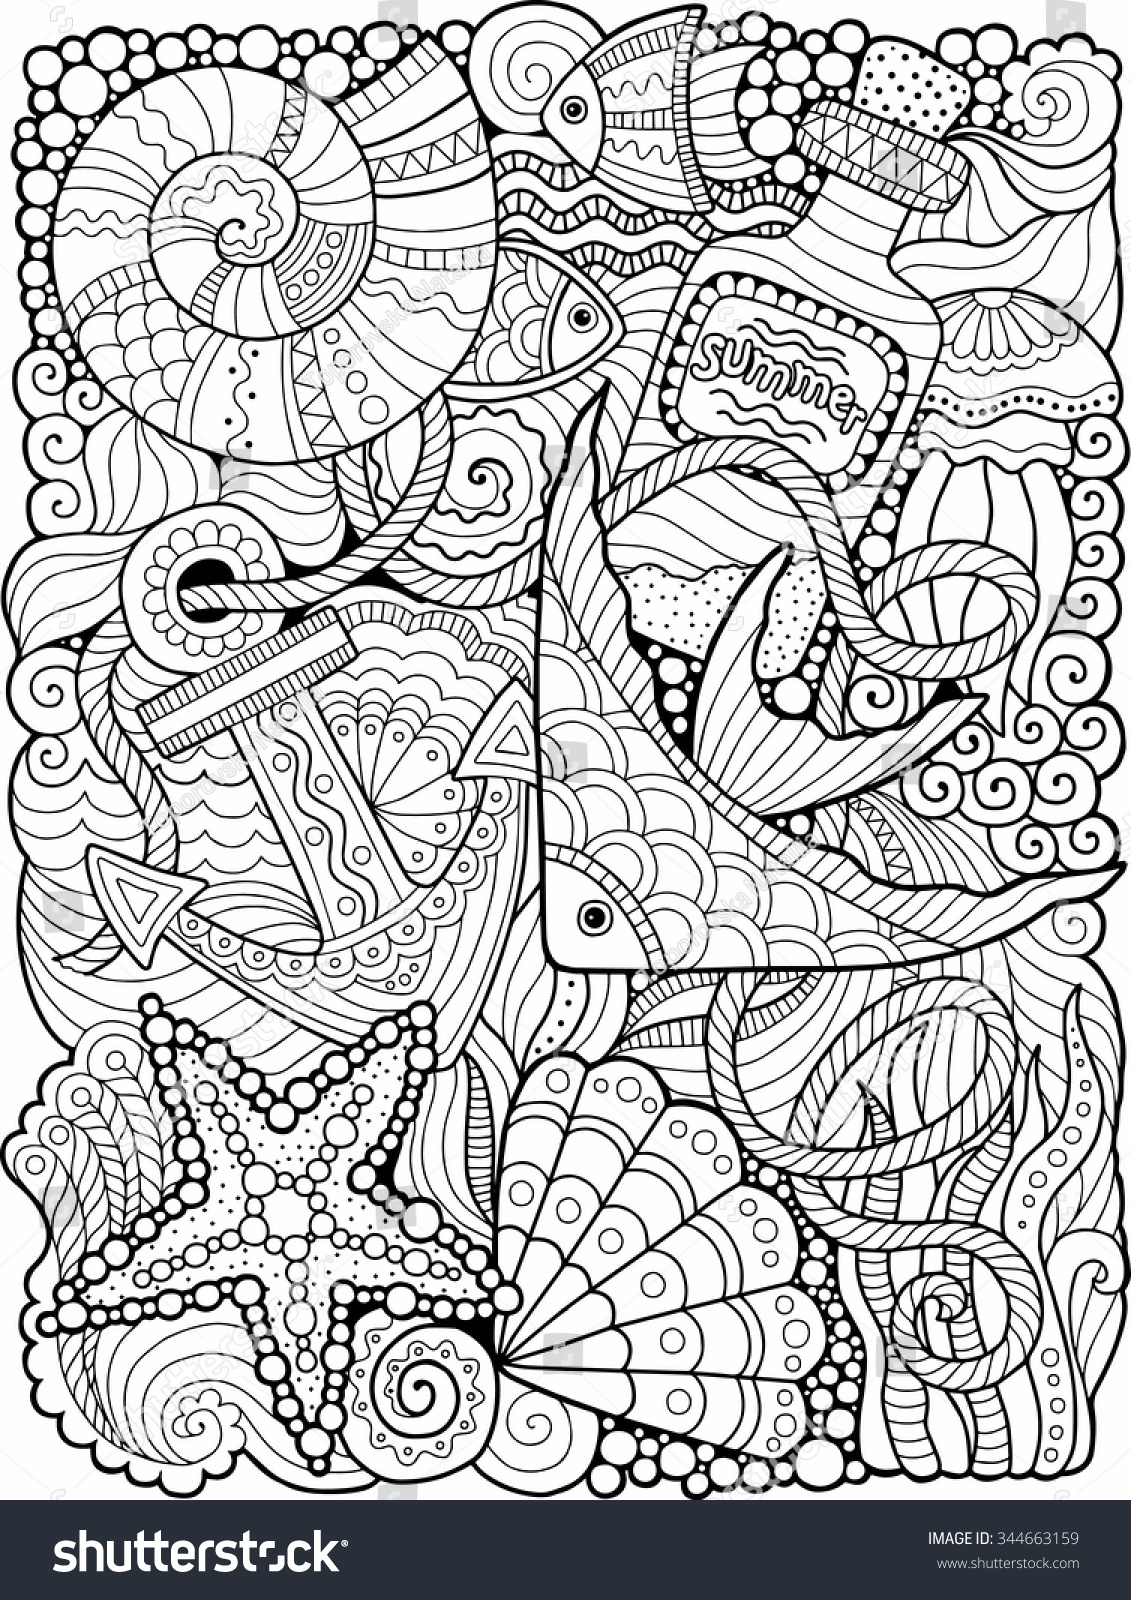 Vector Coloring Book Adult Summers Sea Stock Vector